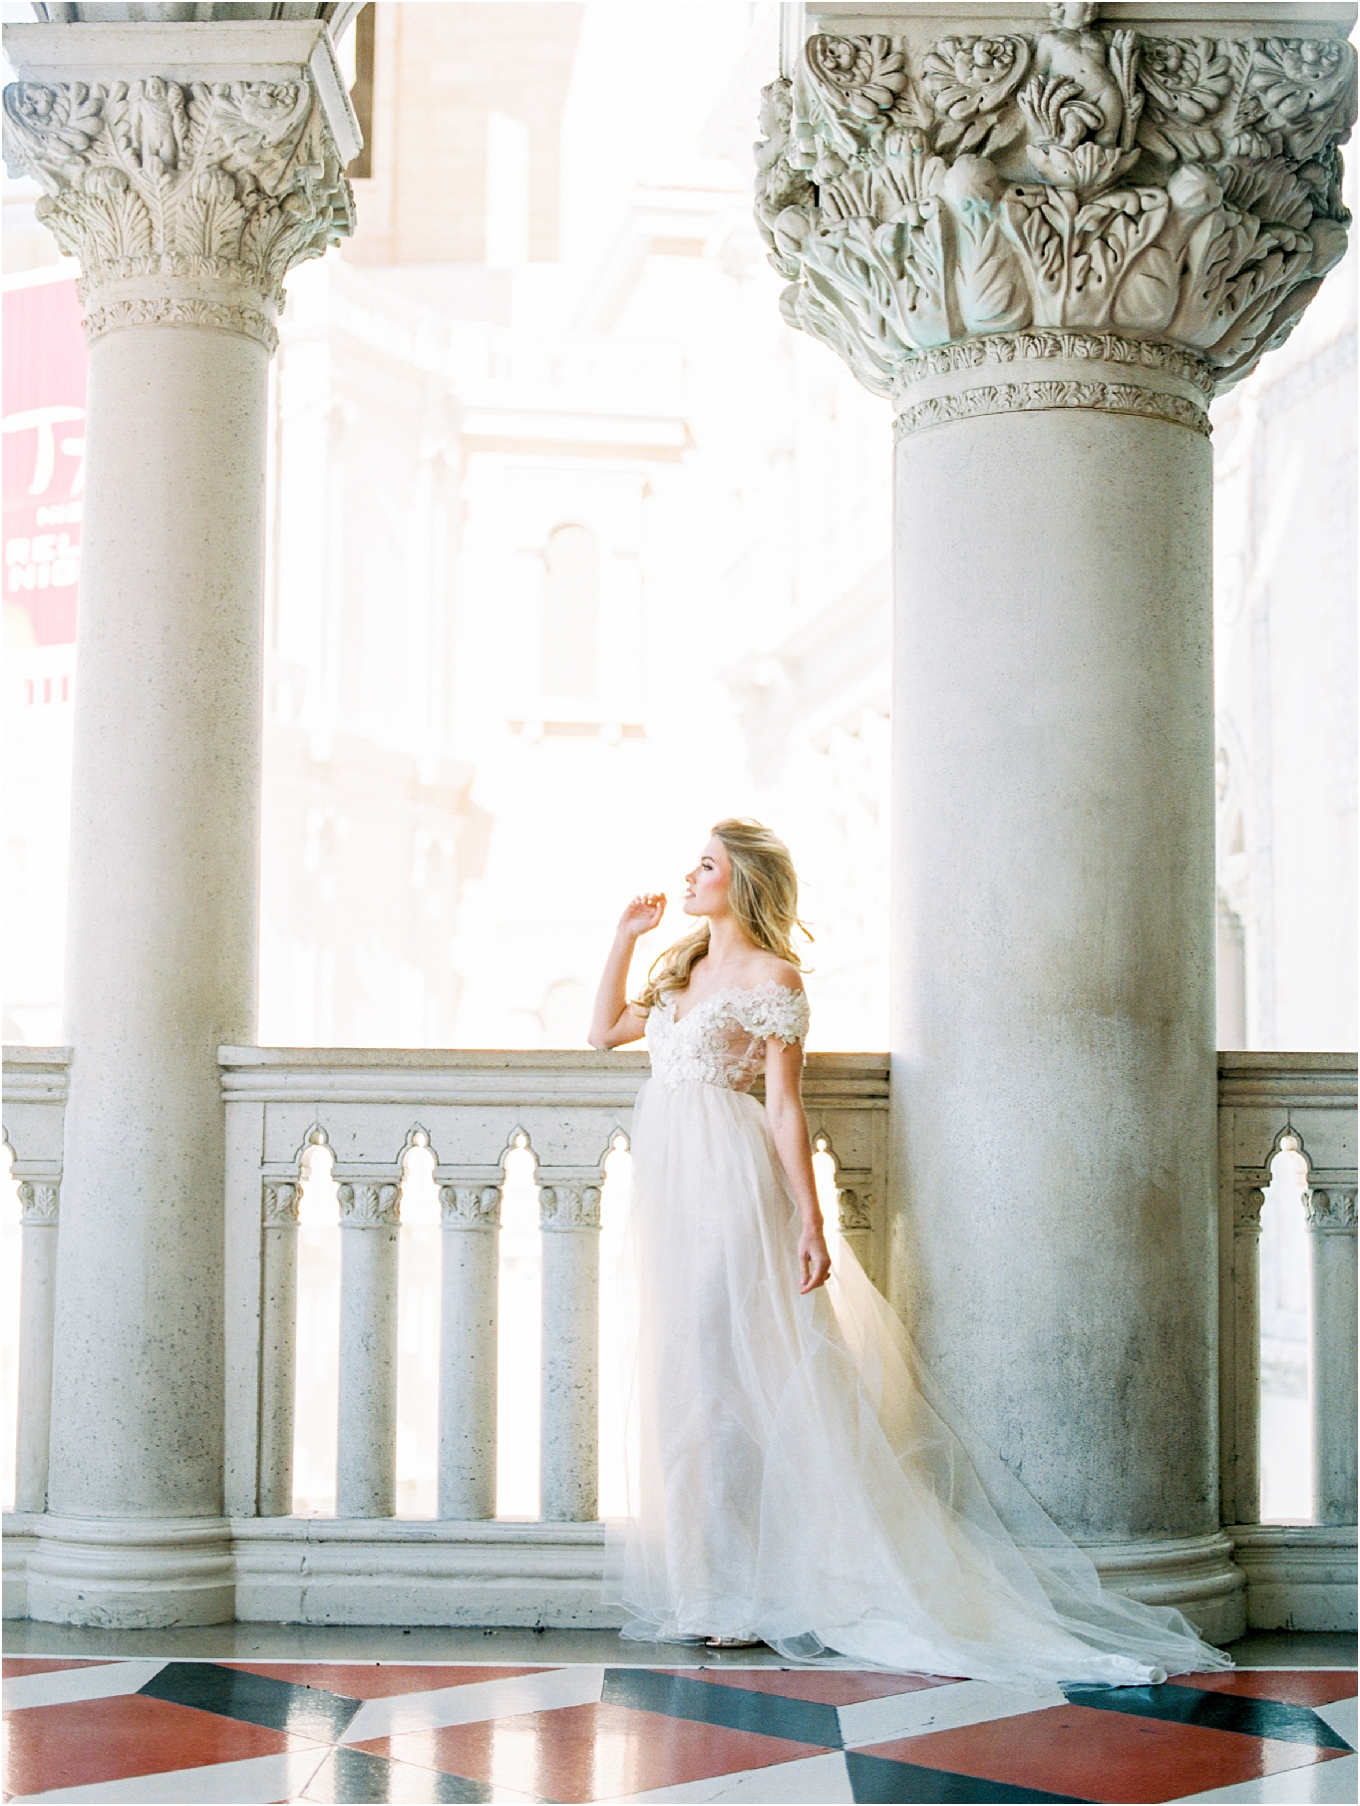 Lisa Silva Photography- Ponte Vedra Beach, St. Augustine and Jacksonville, Florida Fine Art Film Wedding and Boudoir Photography- Fine Art Film Bridal Editorial at the Venitian, Las Vegas_0018.jpg